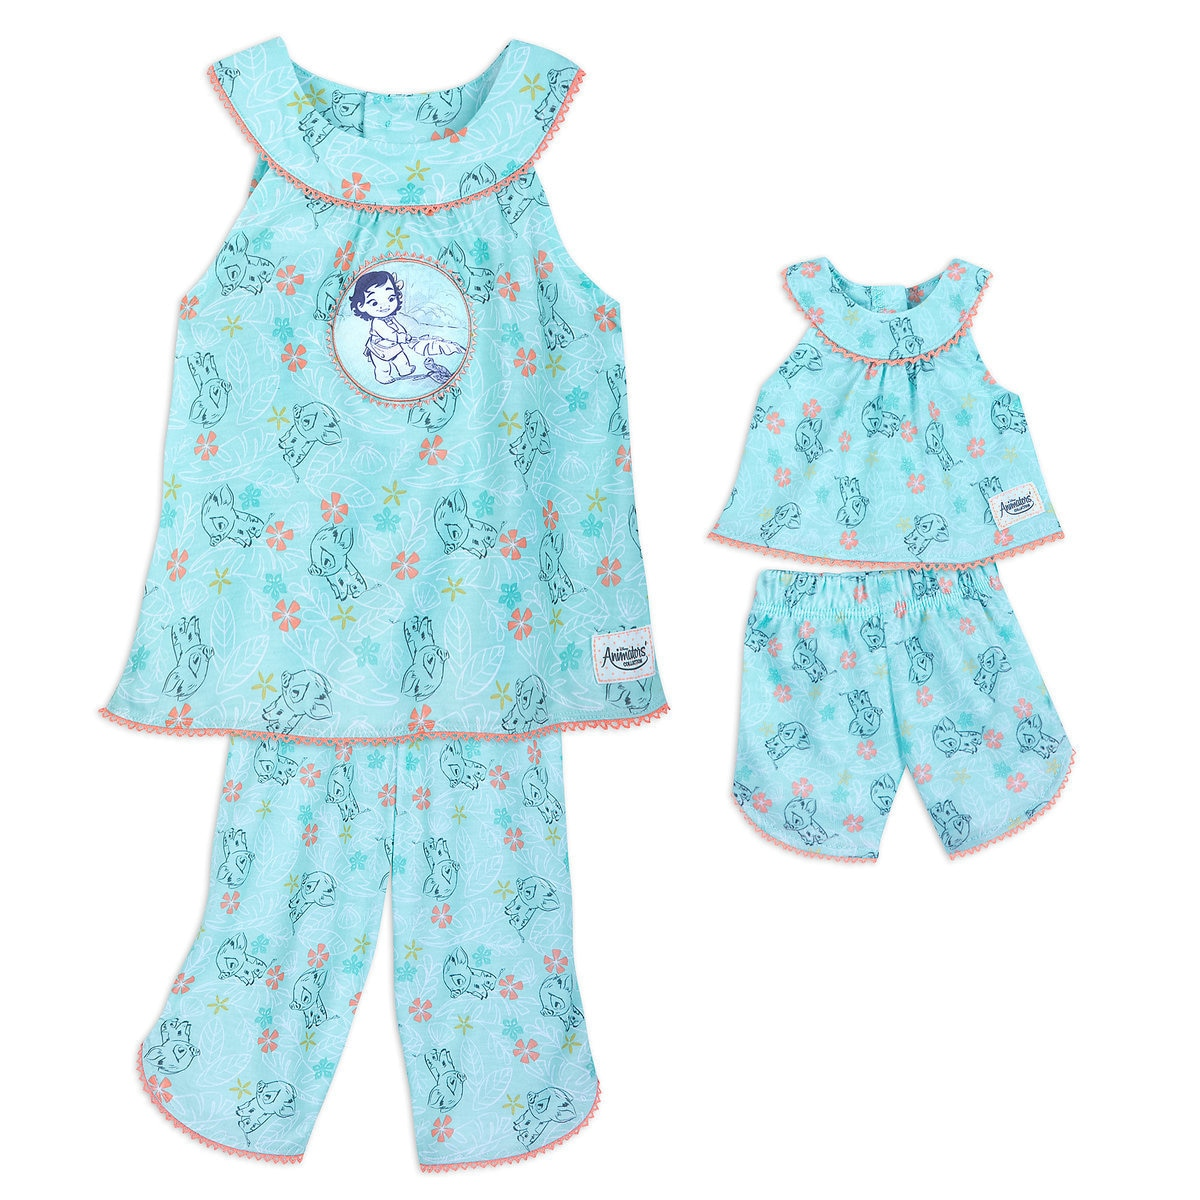 78212dc1 Product Image of Disney Animators' Collection Moana Matching Pajama Set for  Kids and Doll #